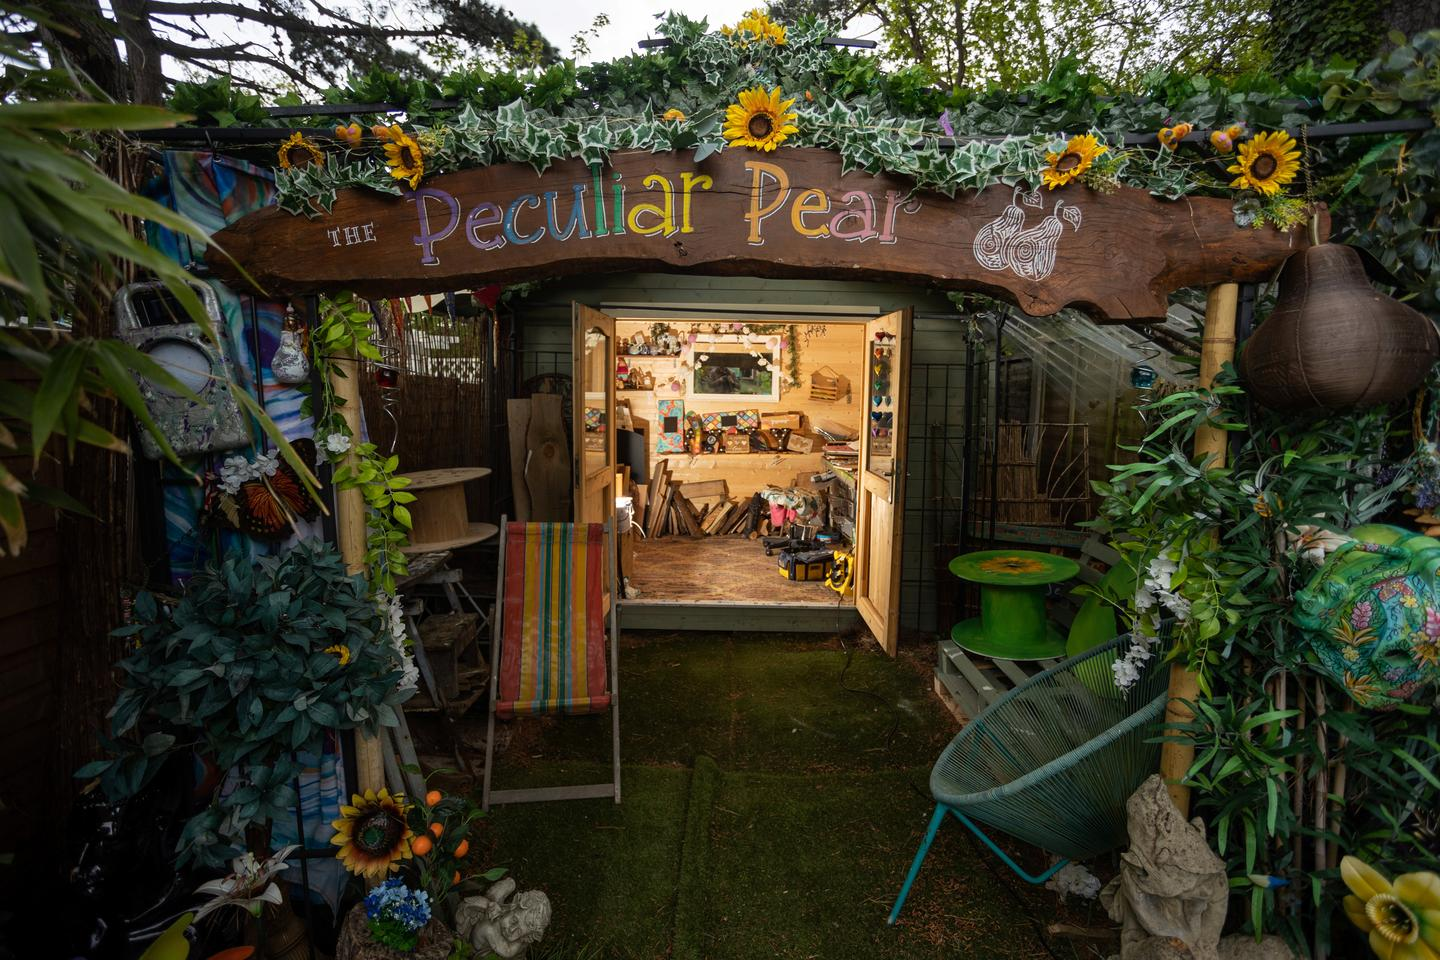 The Peculiar Pear was designed by Ally Scott and serves as her painting studio. The project is a finalist in the Workshop/Studio category